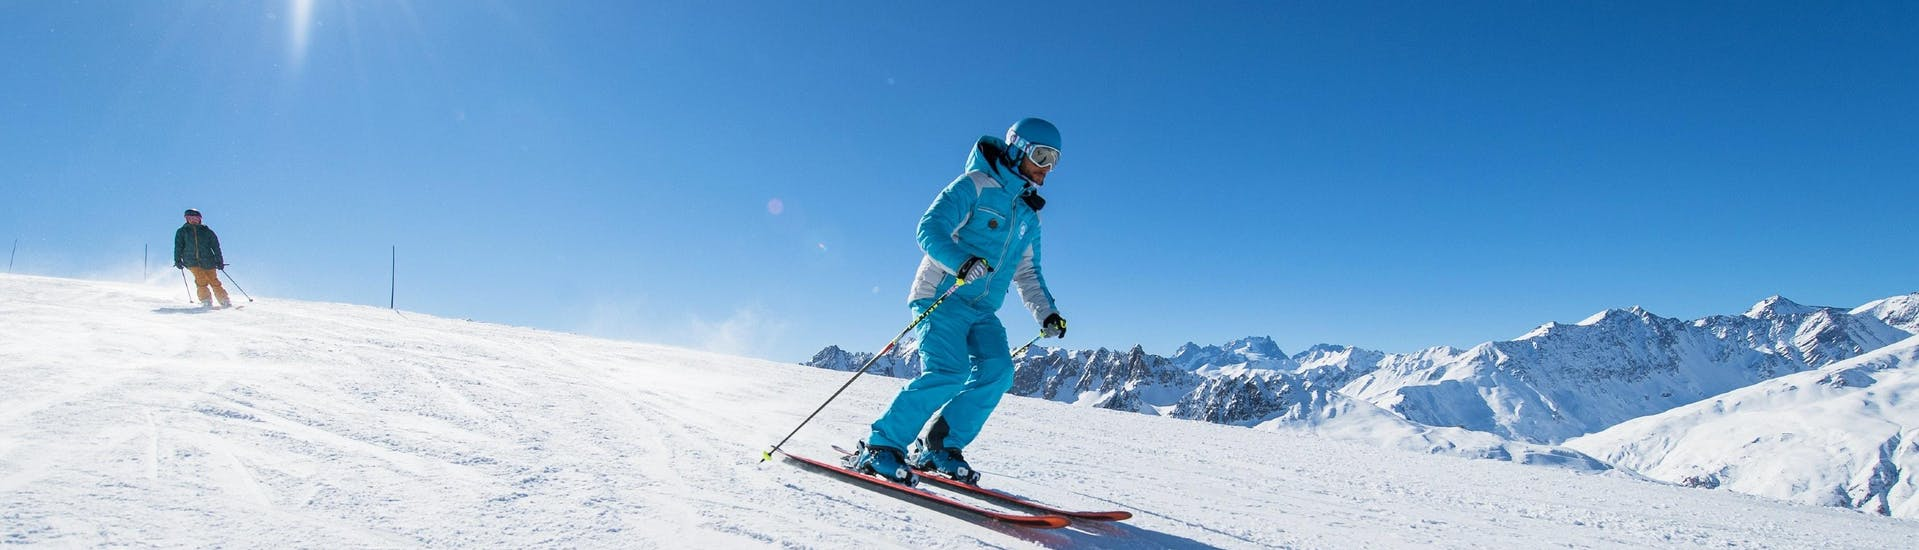 A skier is skiing confidently thanks to his Private Ski Lessons for Adults of All Levels - Morning with the ski school ESI Ski Family in Risoul.